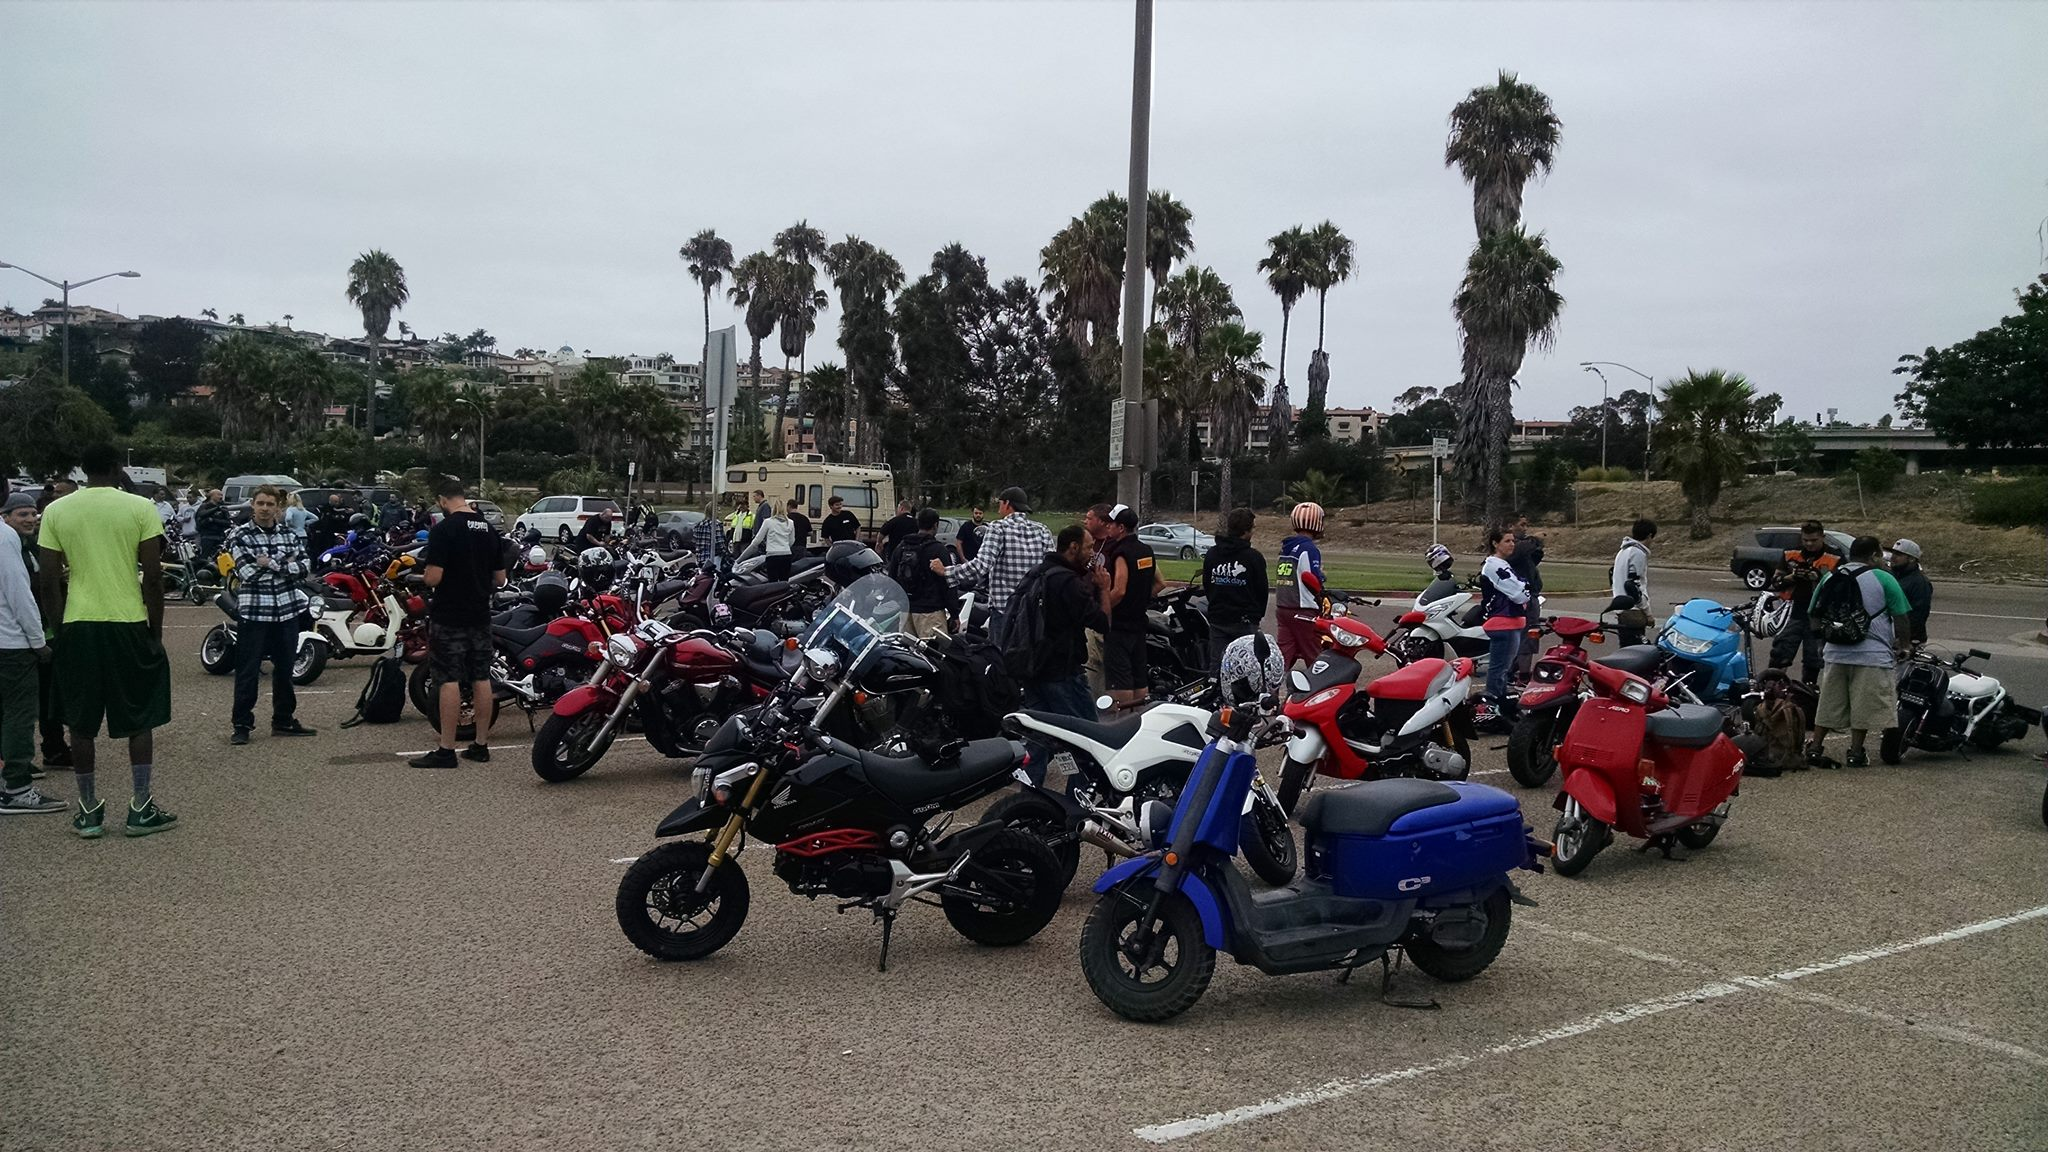 Went to a scooter/Grom Rally last Saturday called RiderzBlok-14125087_10208173864836870_6767228640968098998_o.jpg